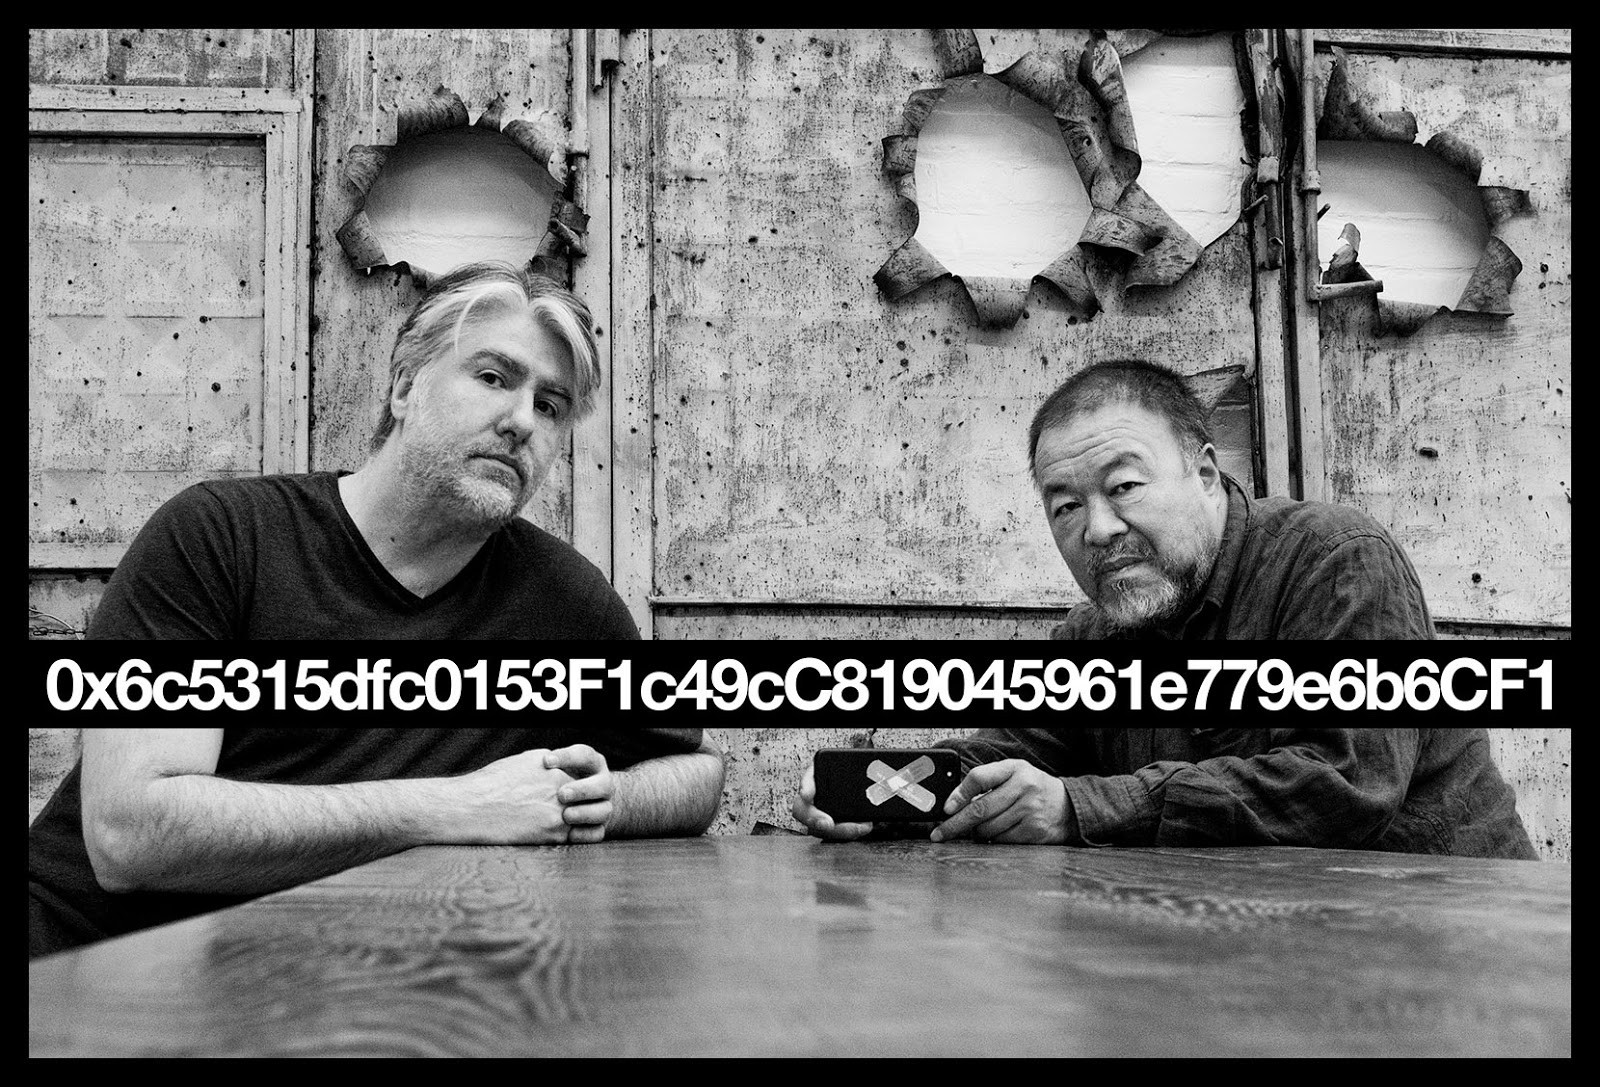 Perfect & Priceless - Value Systems on the BlockchainNOVEMBER 16, 2018 - FEBRUARY 28, 2019Featured Work By: Kevin Abosch & AI Weiwei